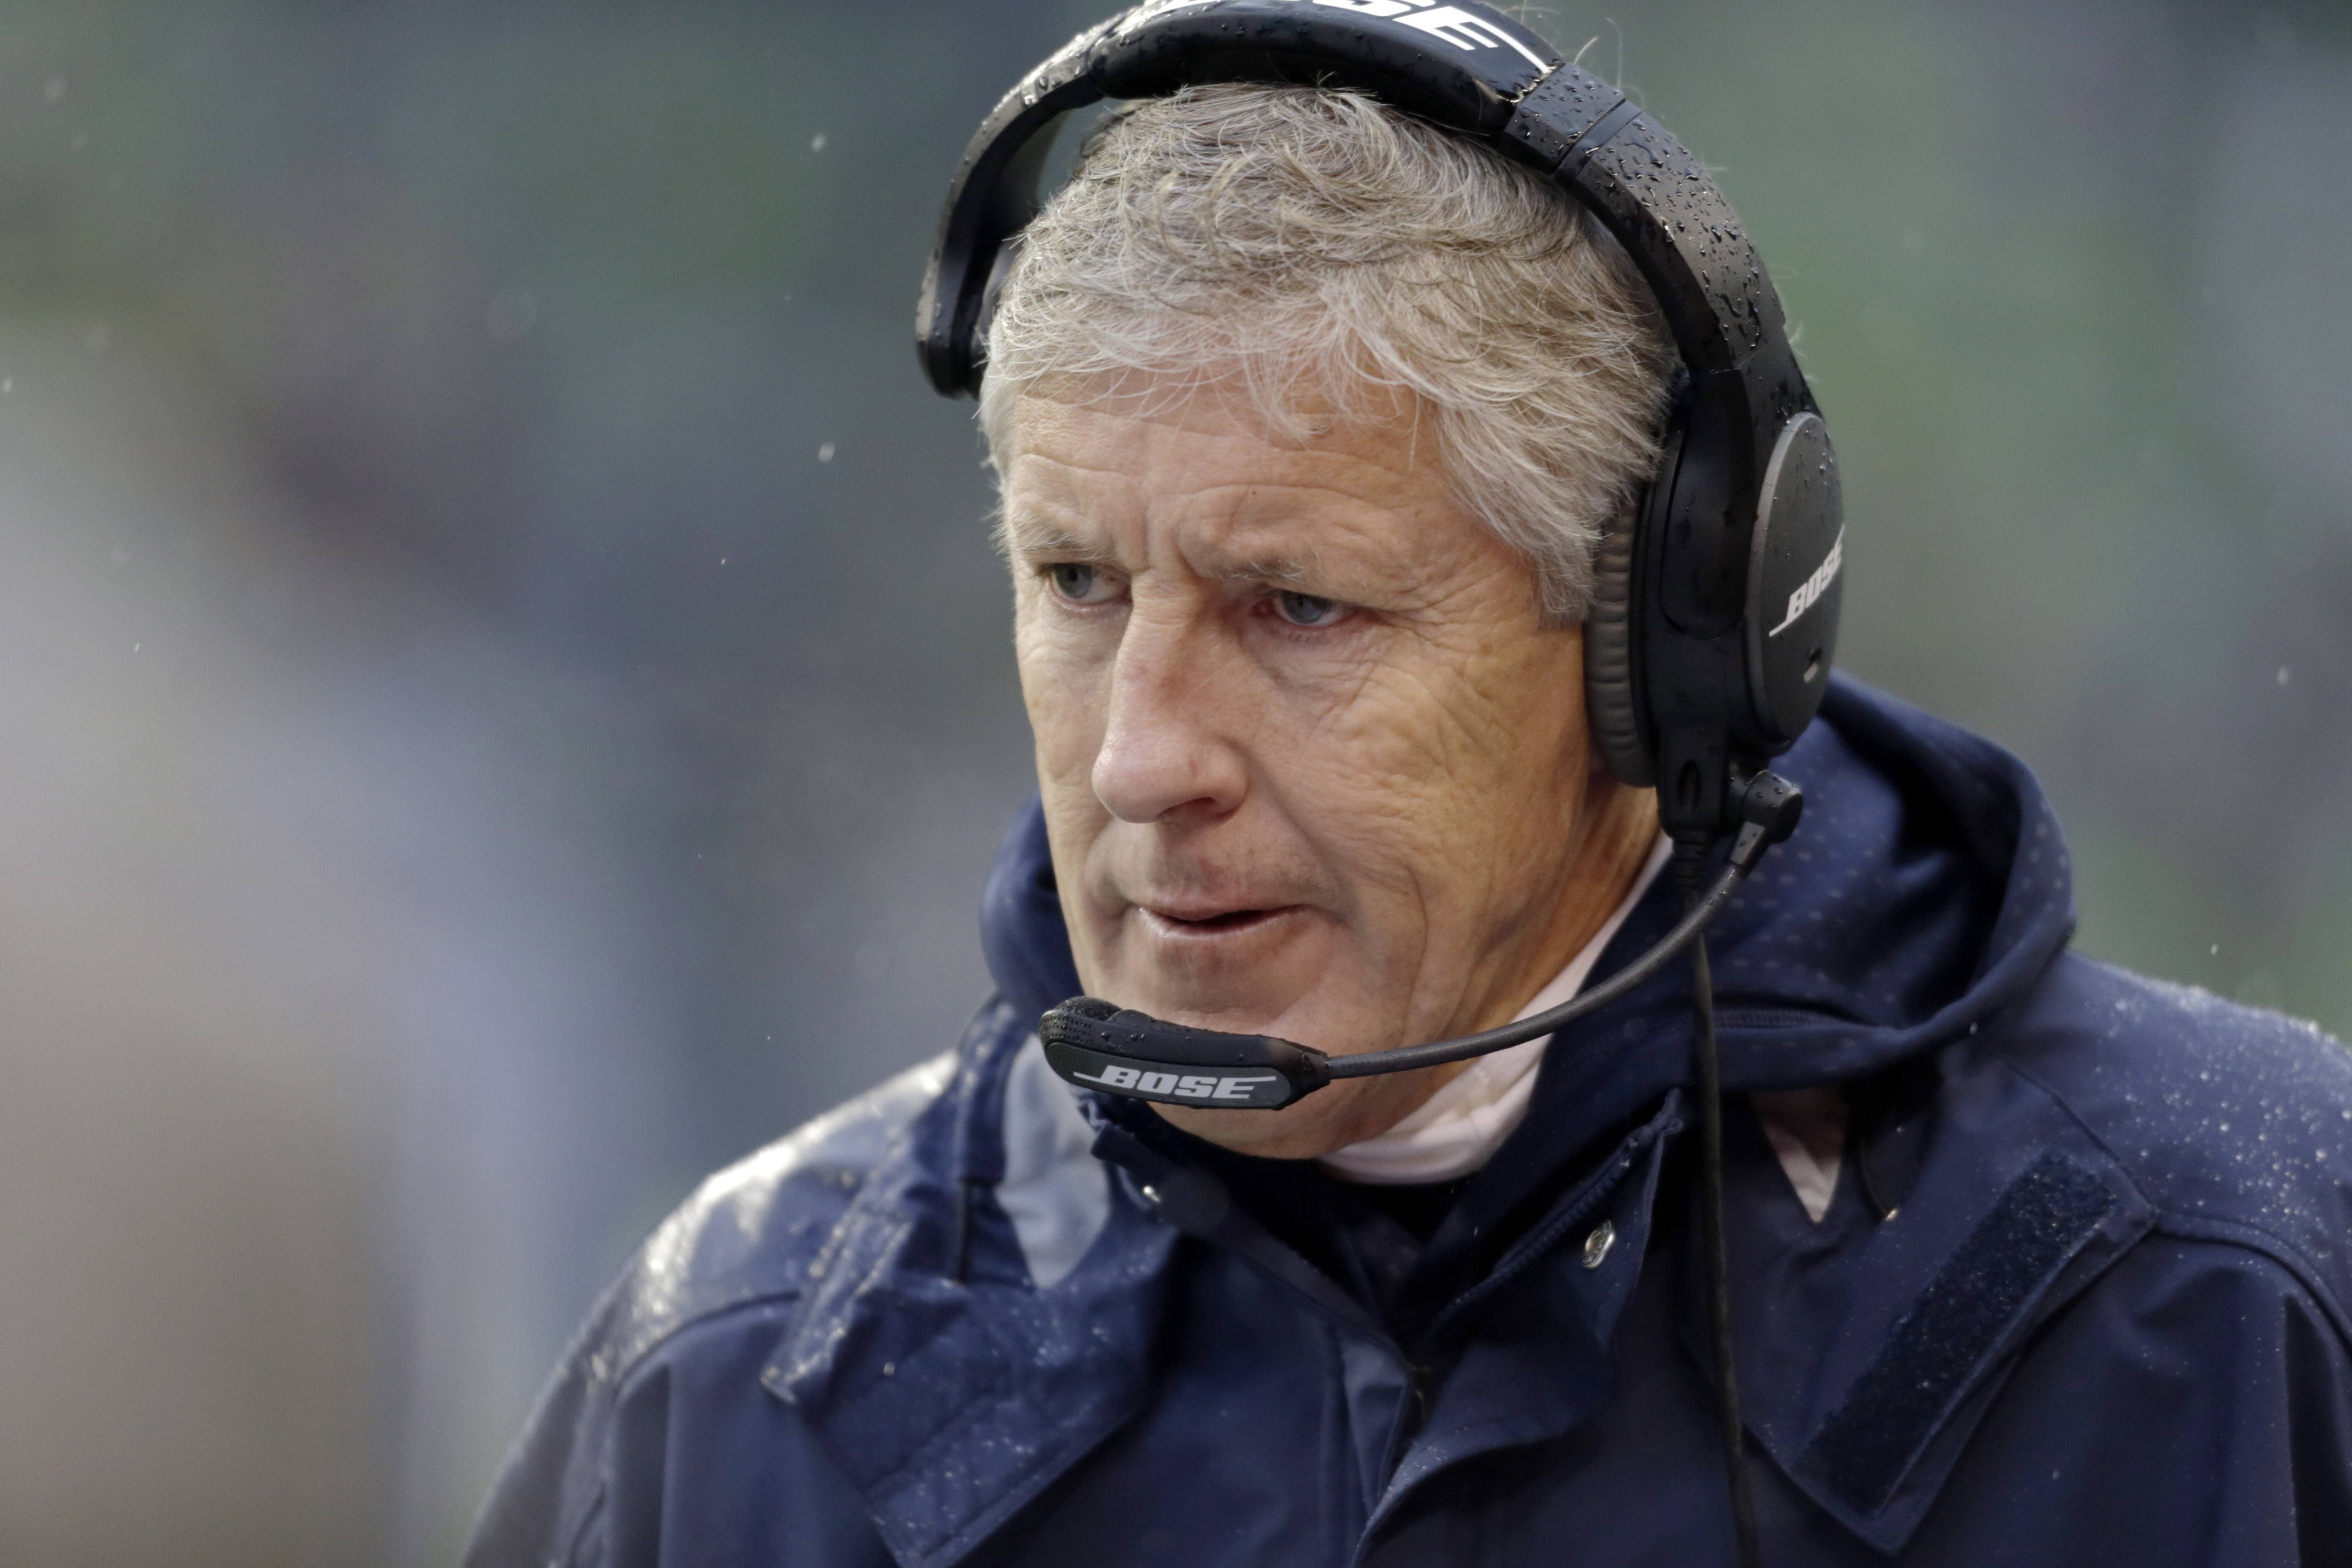 FILE - In this Sunday, Dec. 27, 2015, file photo, Seattle Seahawks head coach Pete Carroll walks on the sidelines during the first half of an NFL football game against the St. Louis Rams in Seattle. Seattle has the most uncertainty of where it's headed go